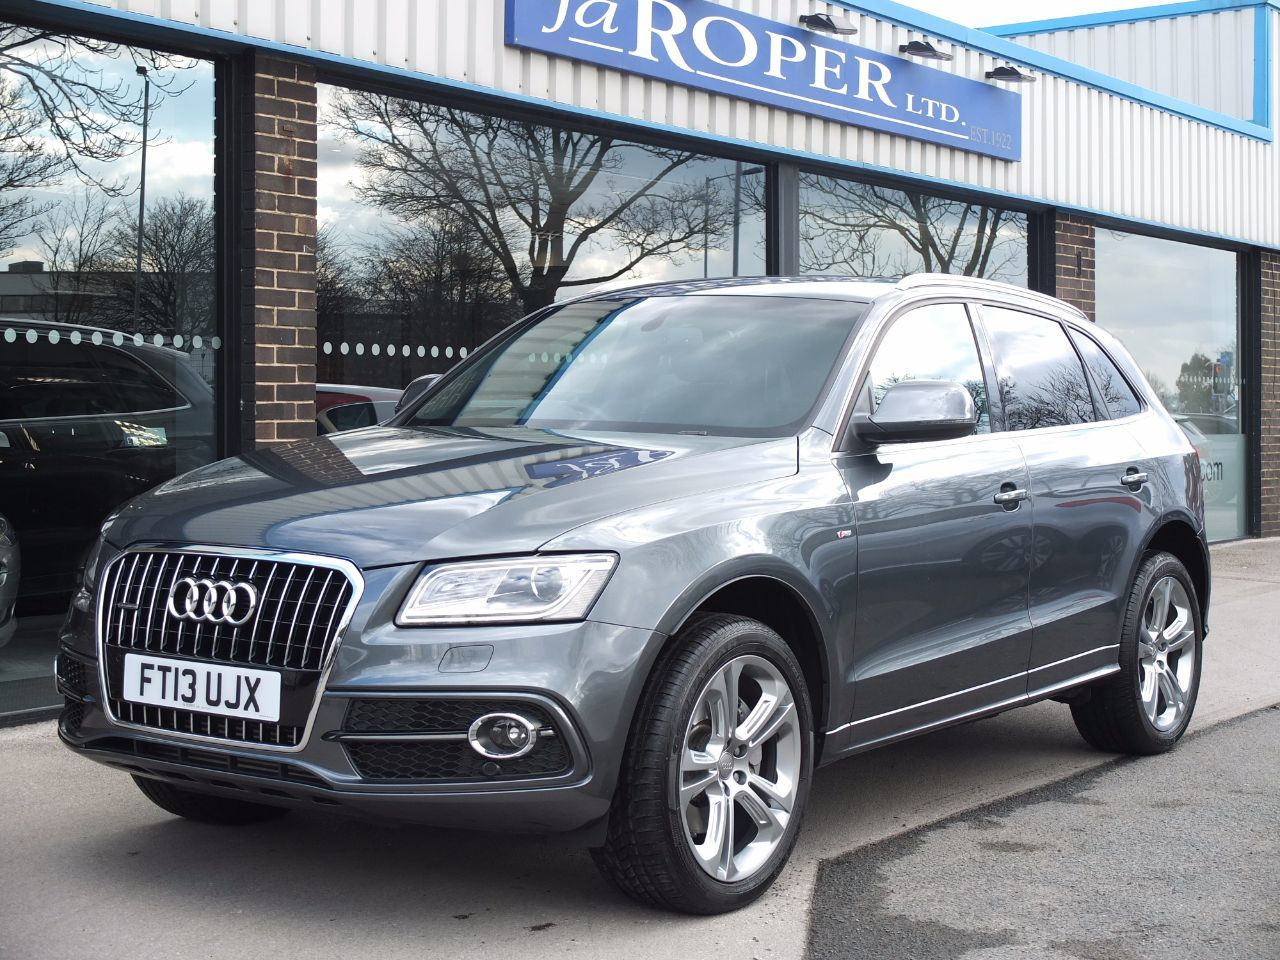 Audi Q5 3.0 TDI quattro S Line Plus S Tronic 245ps +++Spec Estate Diesel Daytona Grey MetallicAudi Q5 3.0 TDI quattro S Line Plus S Tronic 245ps +++Spec Estate Diesel Daytona Grey Metallic at fa Roper Ltd Bradford